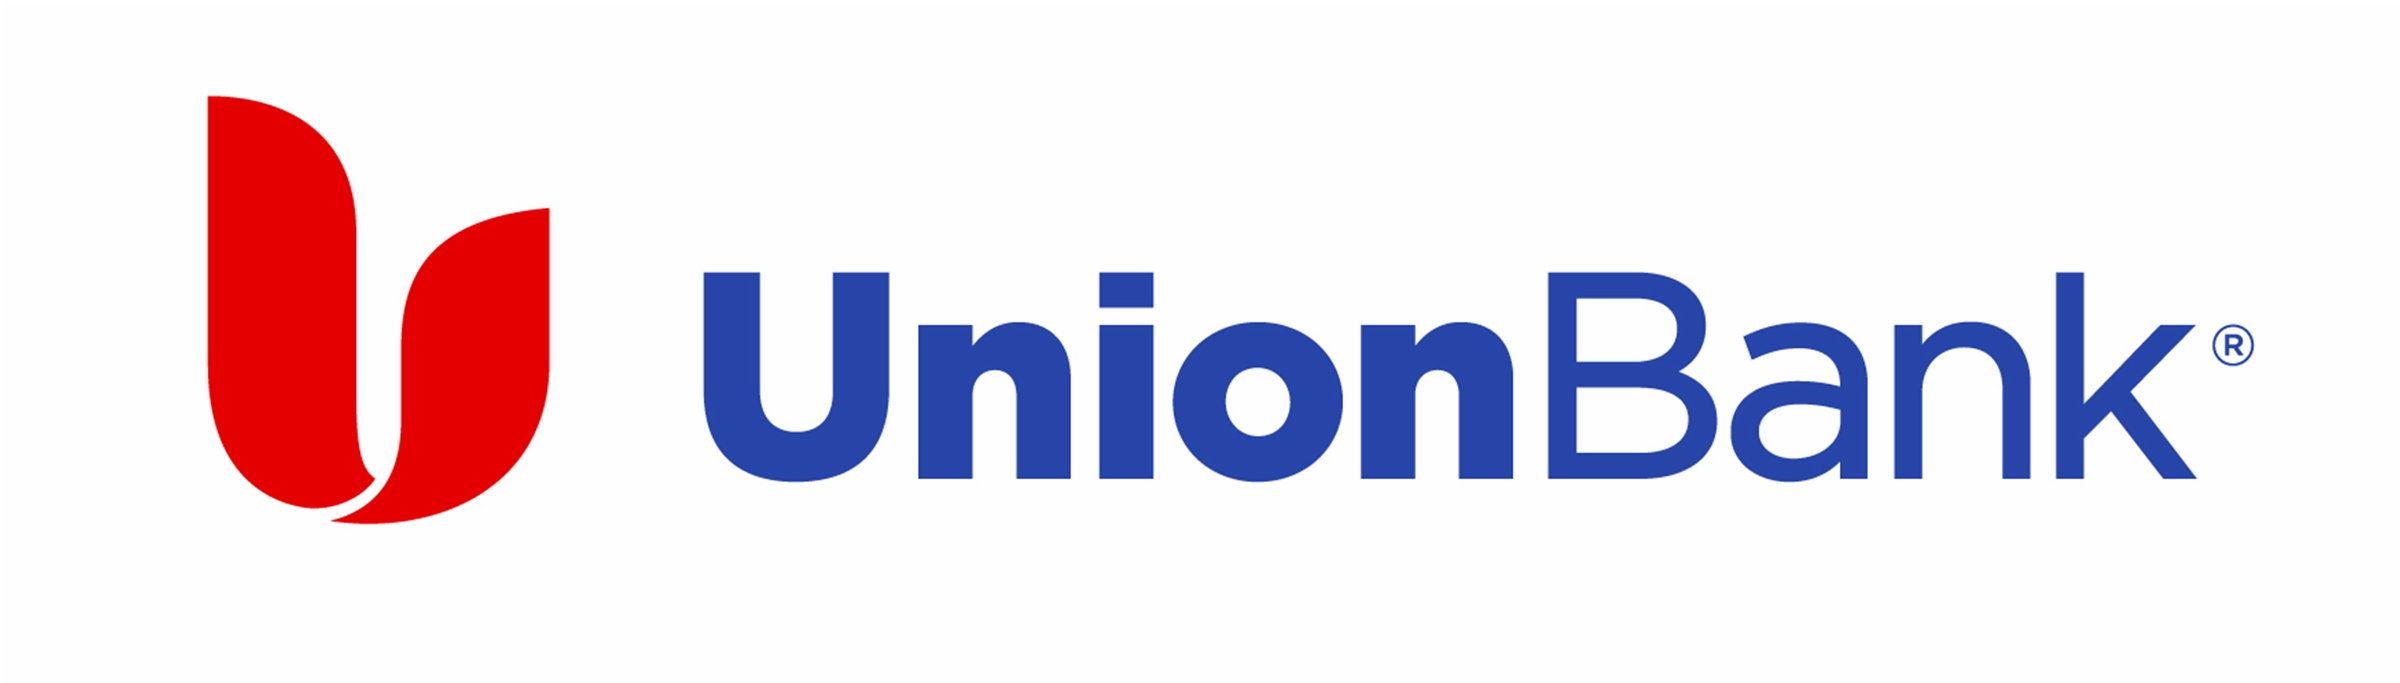 Union Bank Credit Card Payment